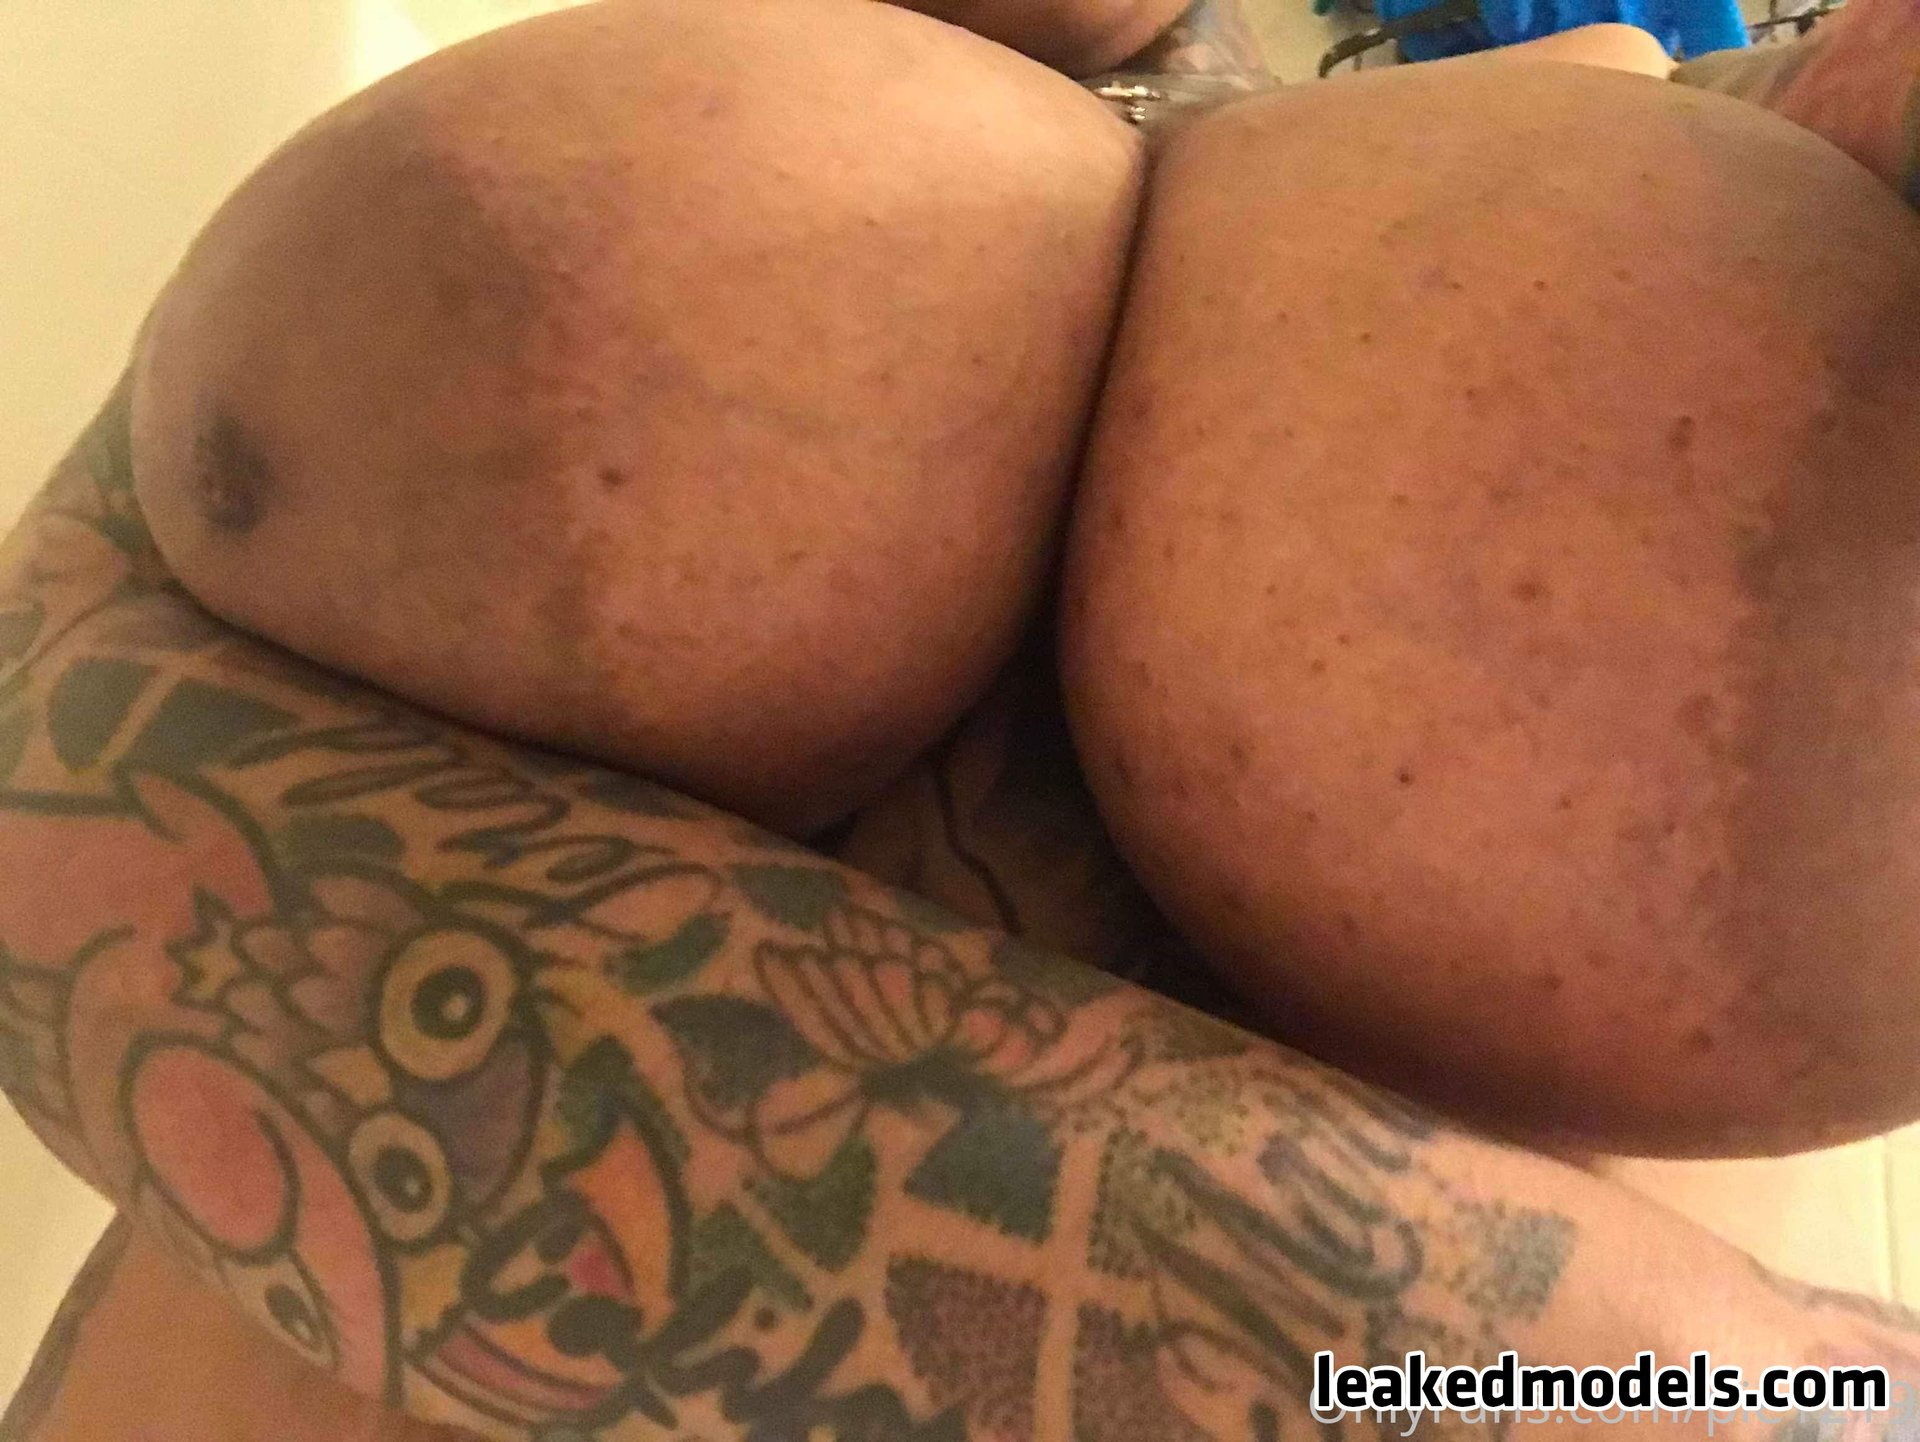 Pretty tatted slut – Pie1219 OnlyFans Leaks (24 Photos and 7 Videos)